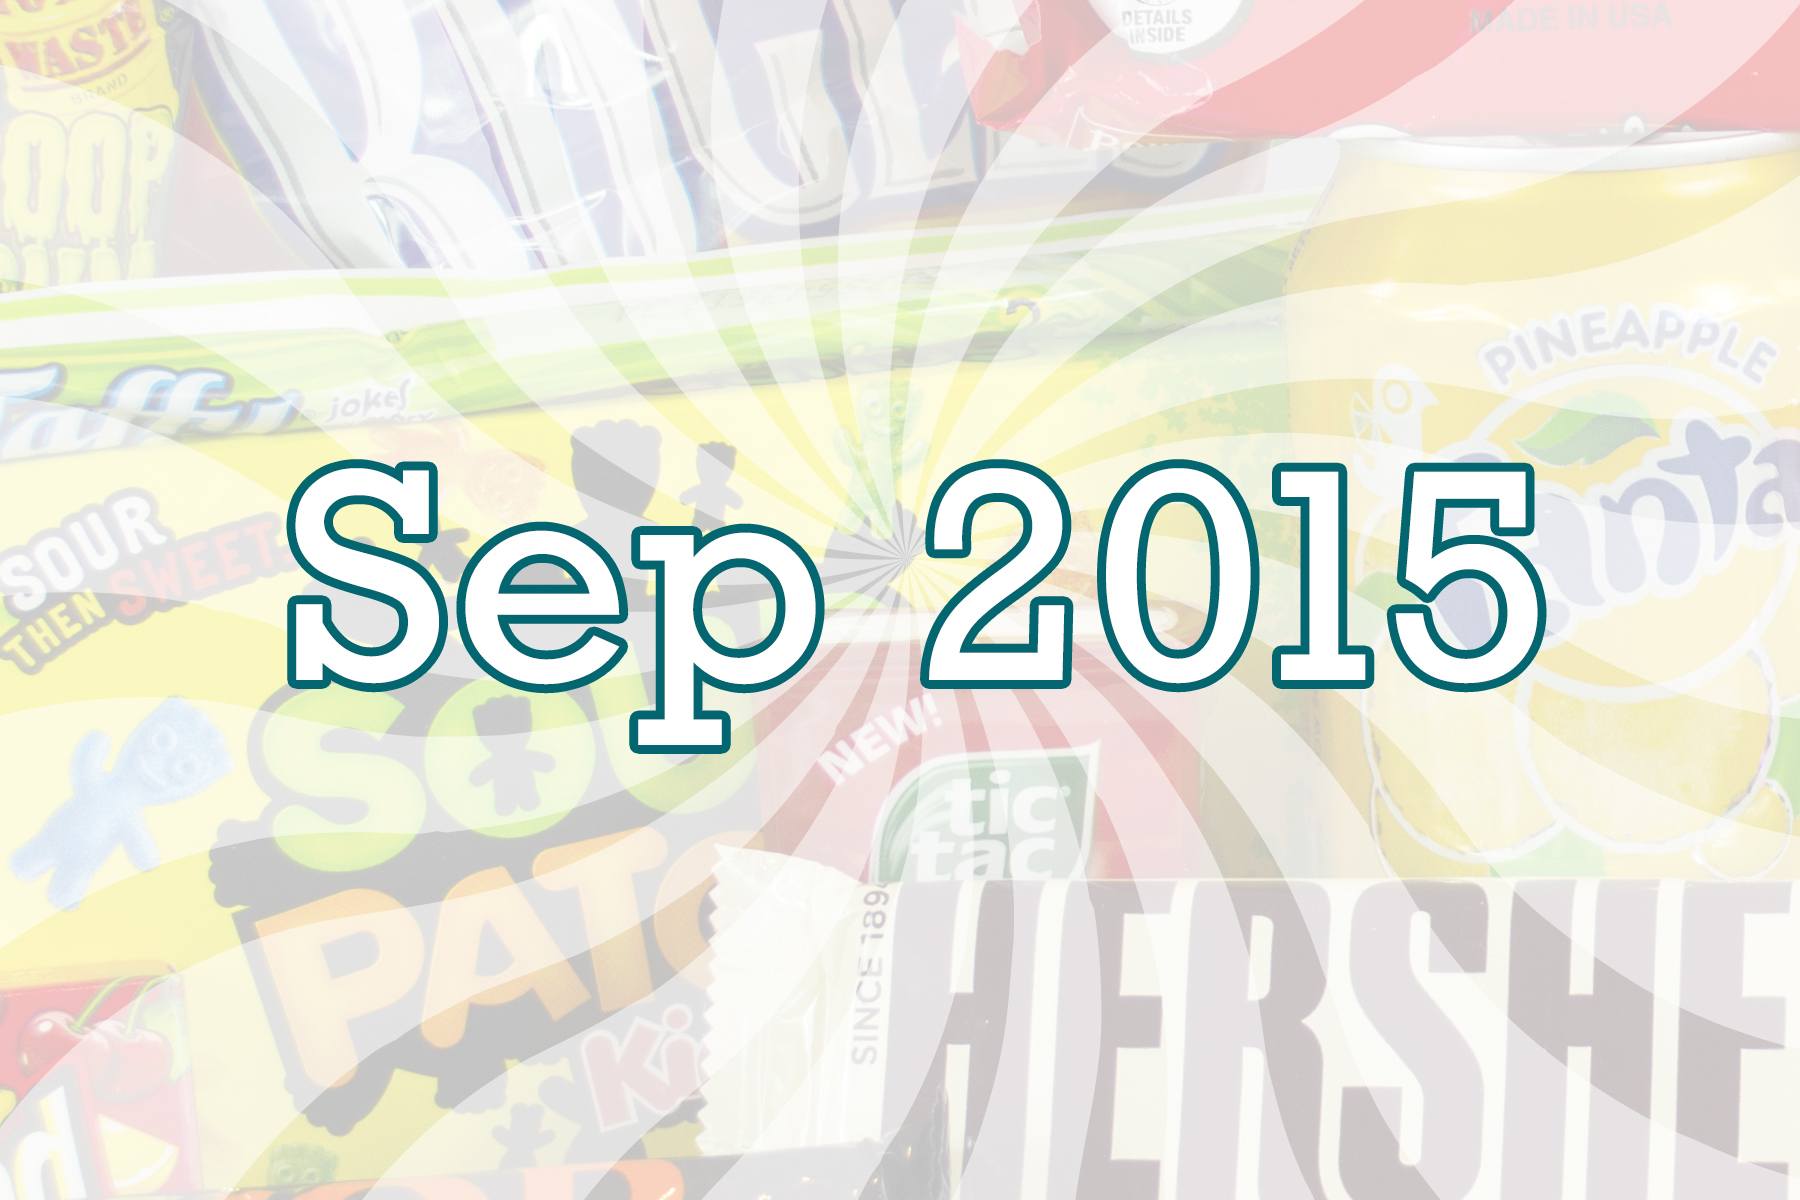 September 2015 American Candy